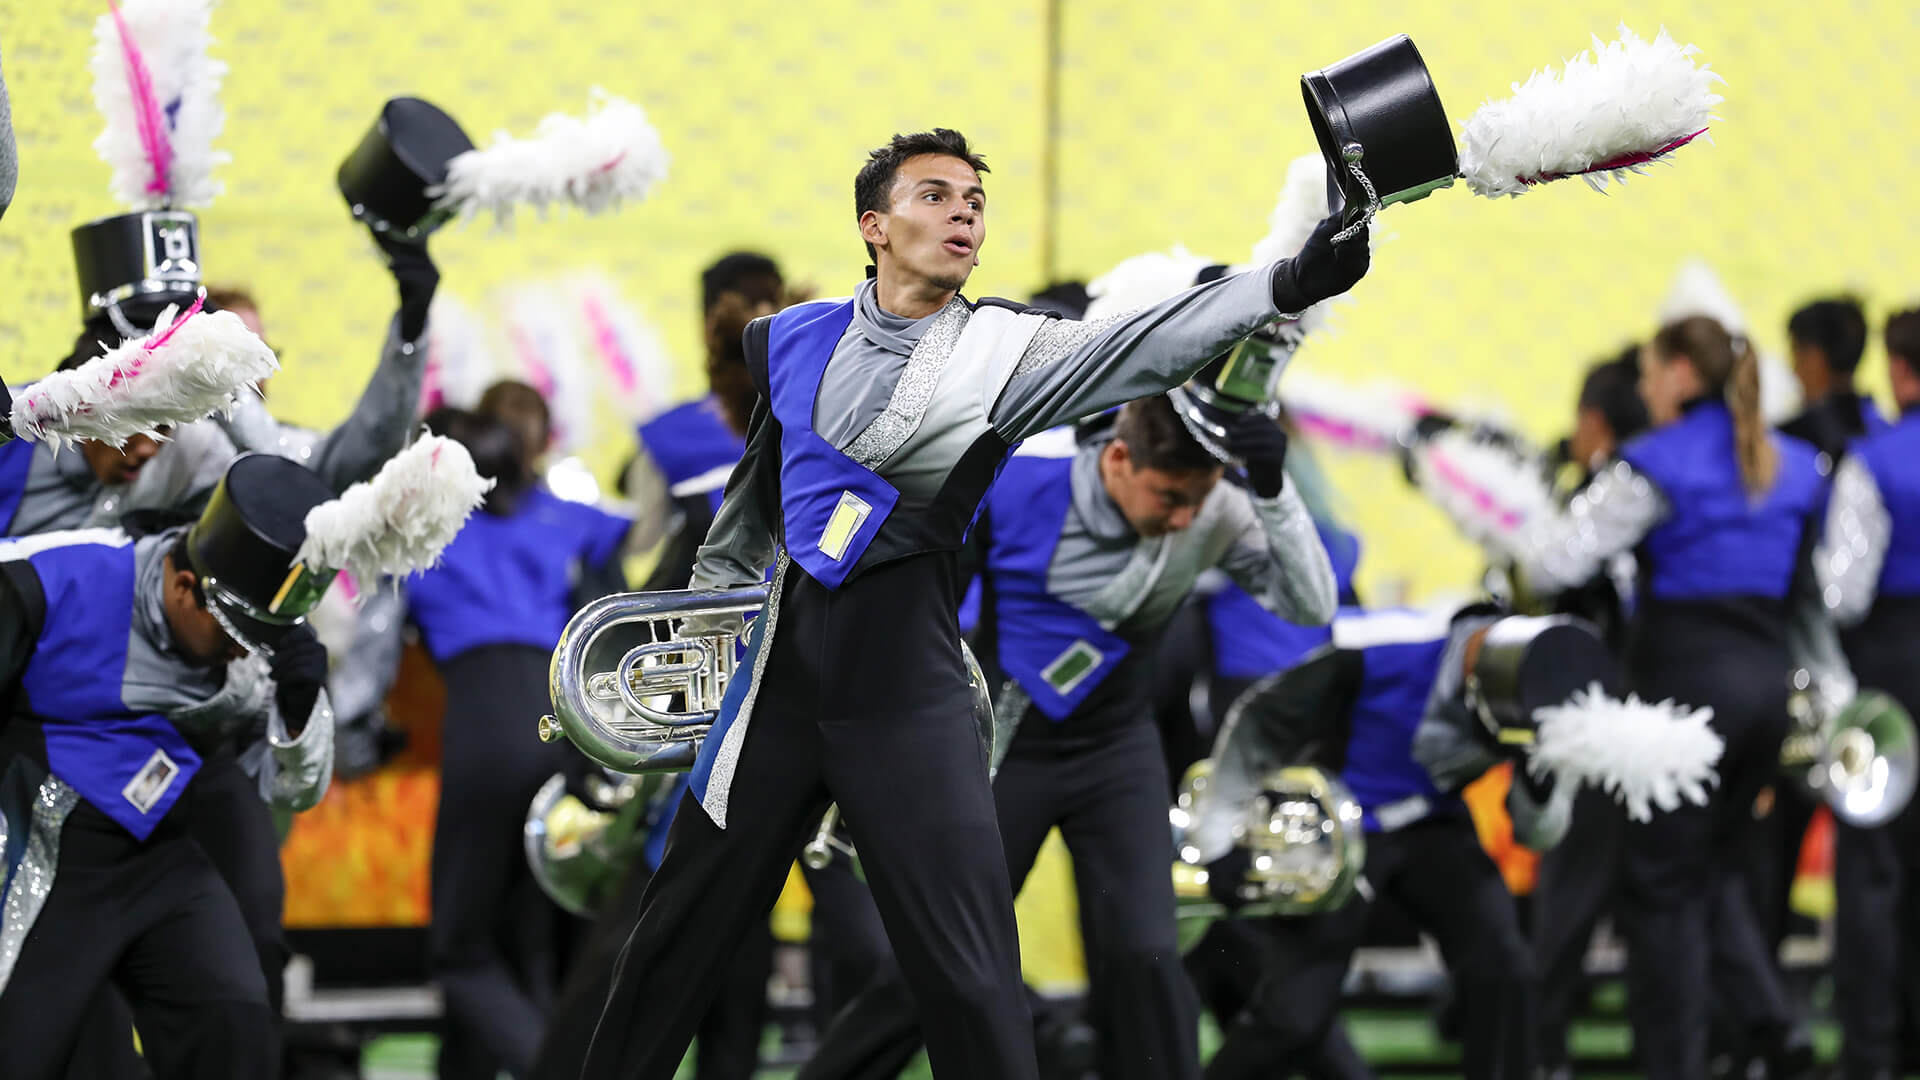 Open Class corps seize World Class opportunity in Indy